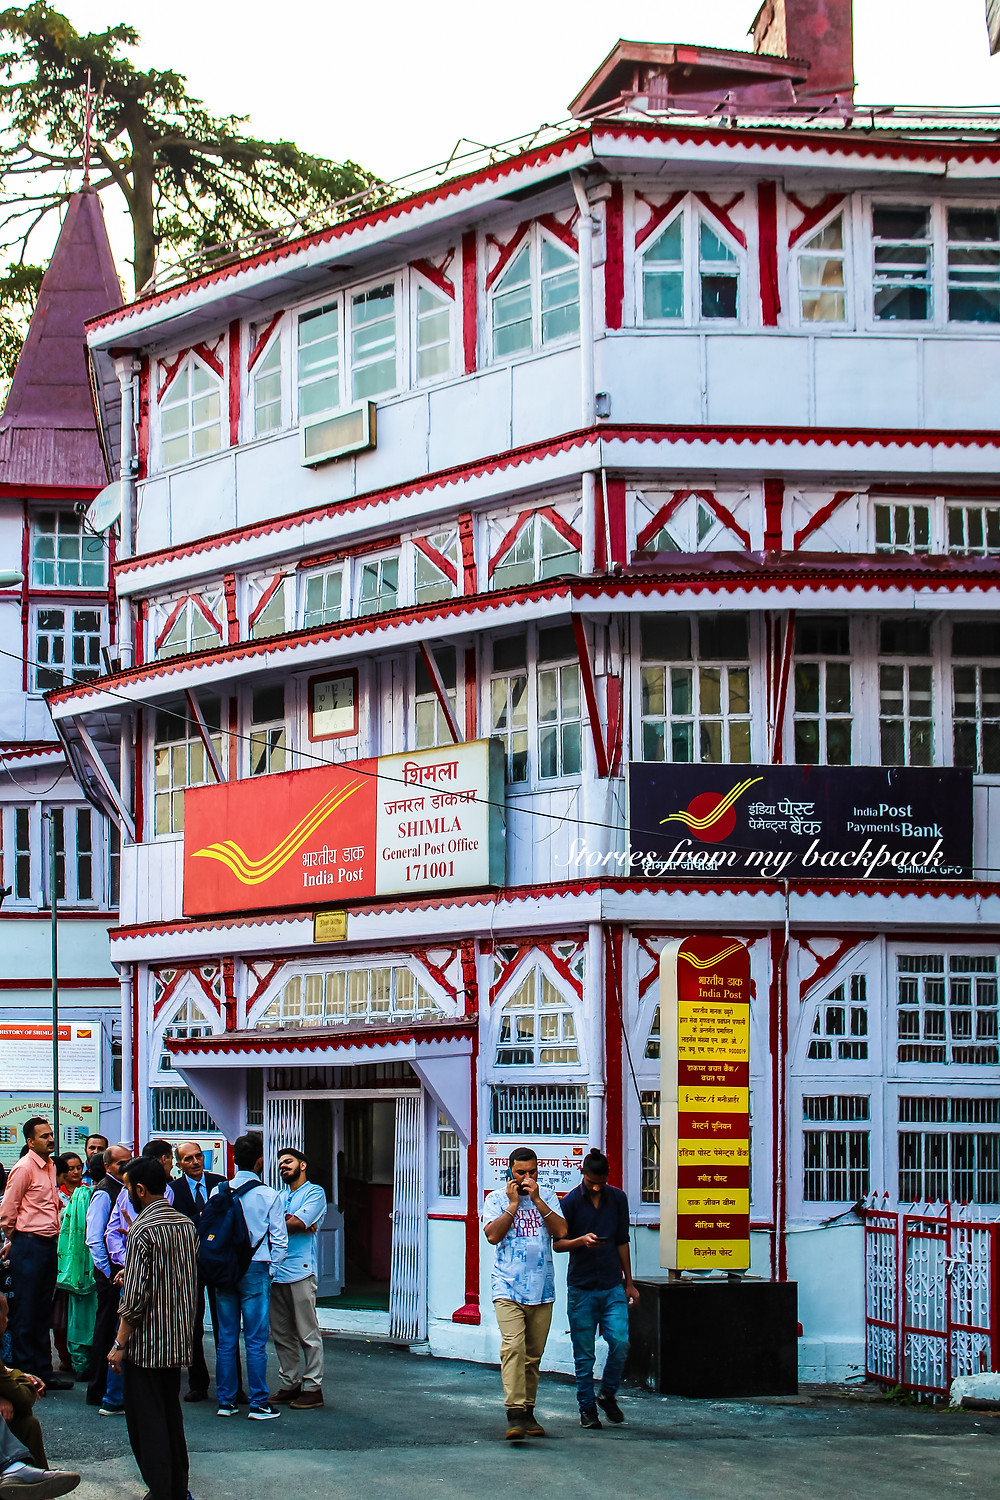 Shimla post office, shimla heritage buildings, Shimla itinerary, Shimla tour, how to get to shimla, travel to shimla